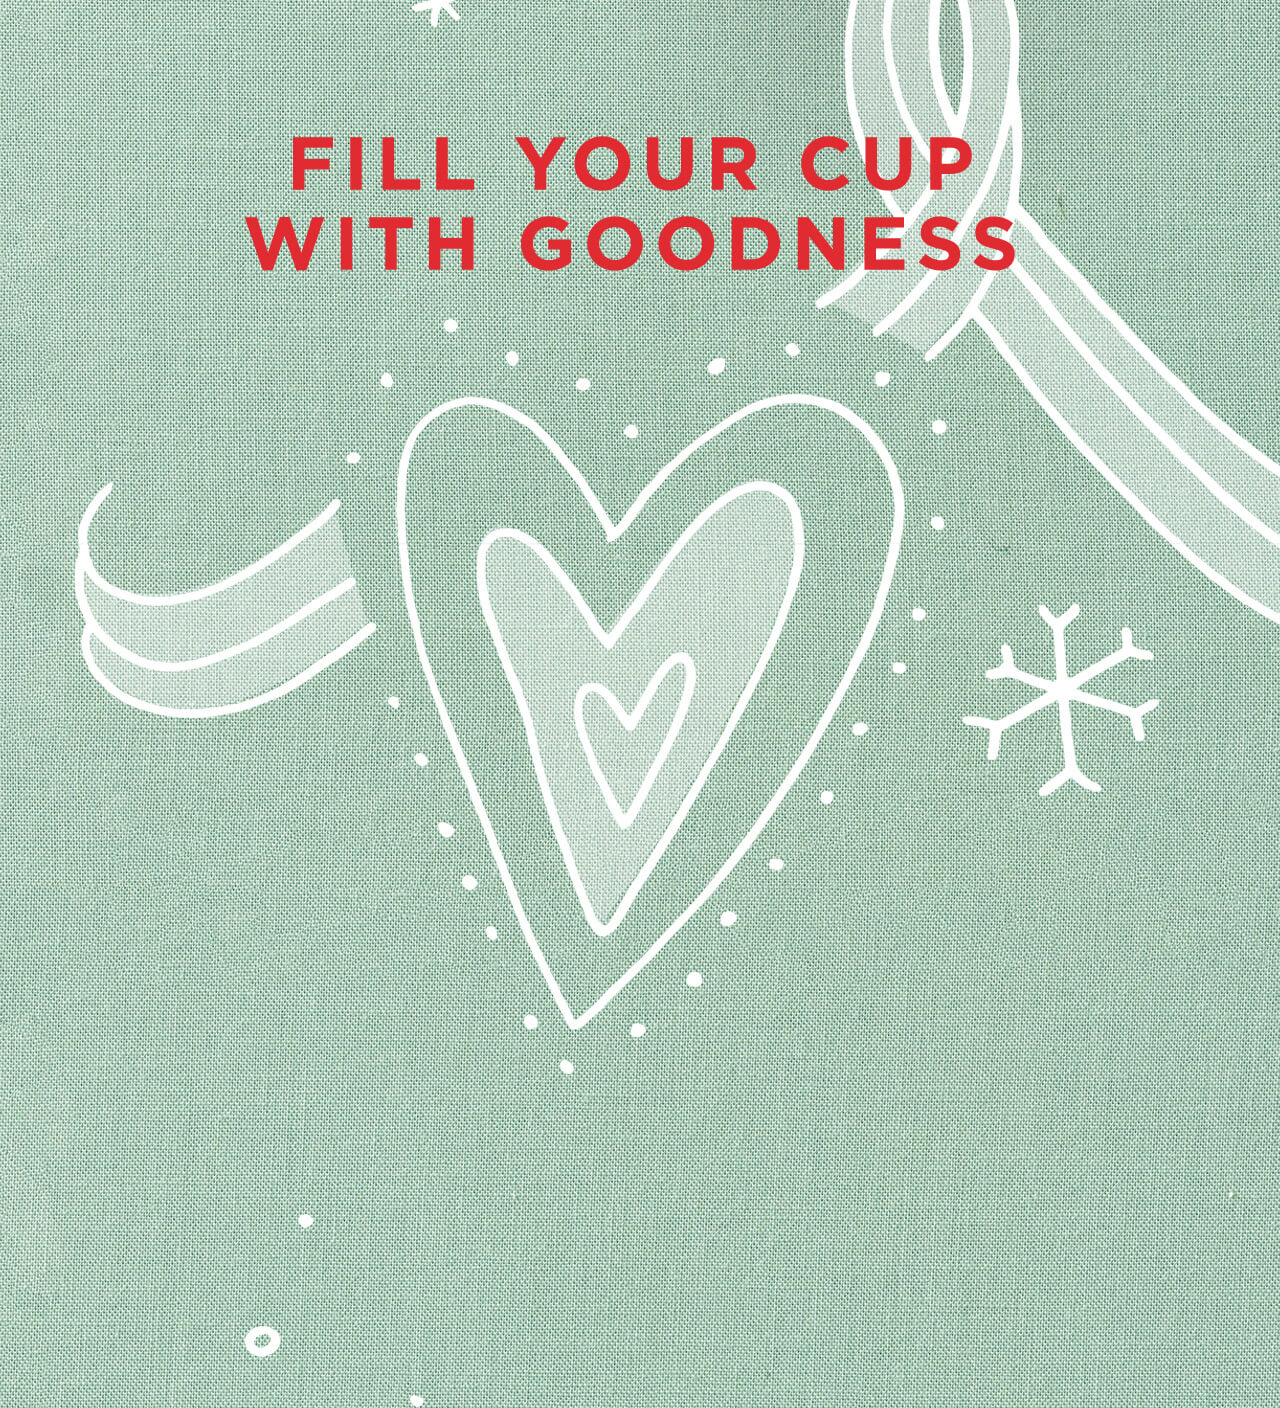 Fill Your Cup with Goodness